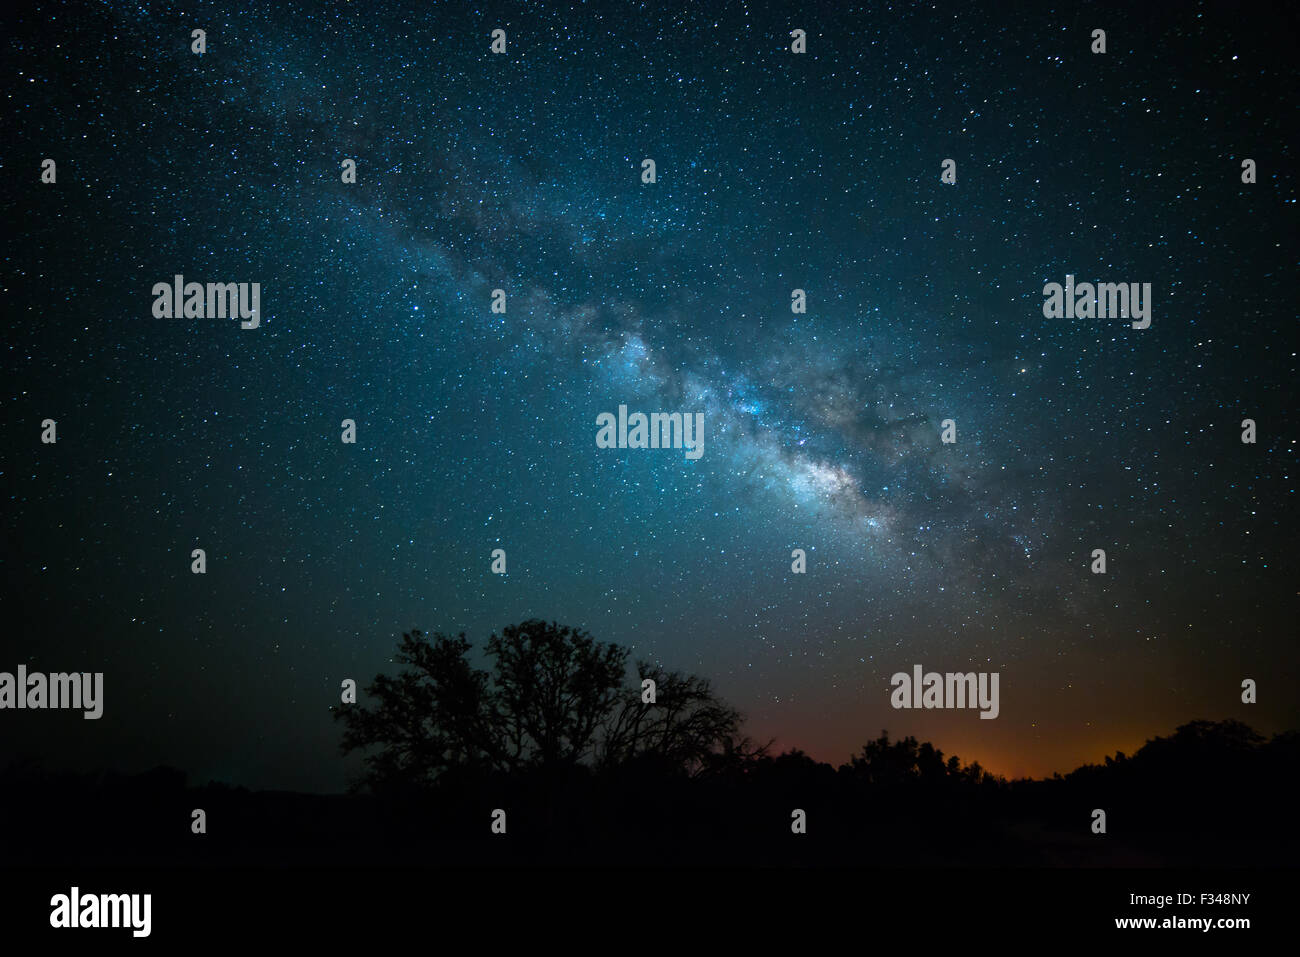 Wide angle shot of the milky way core - Stock Image